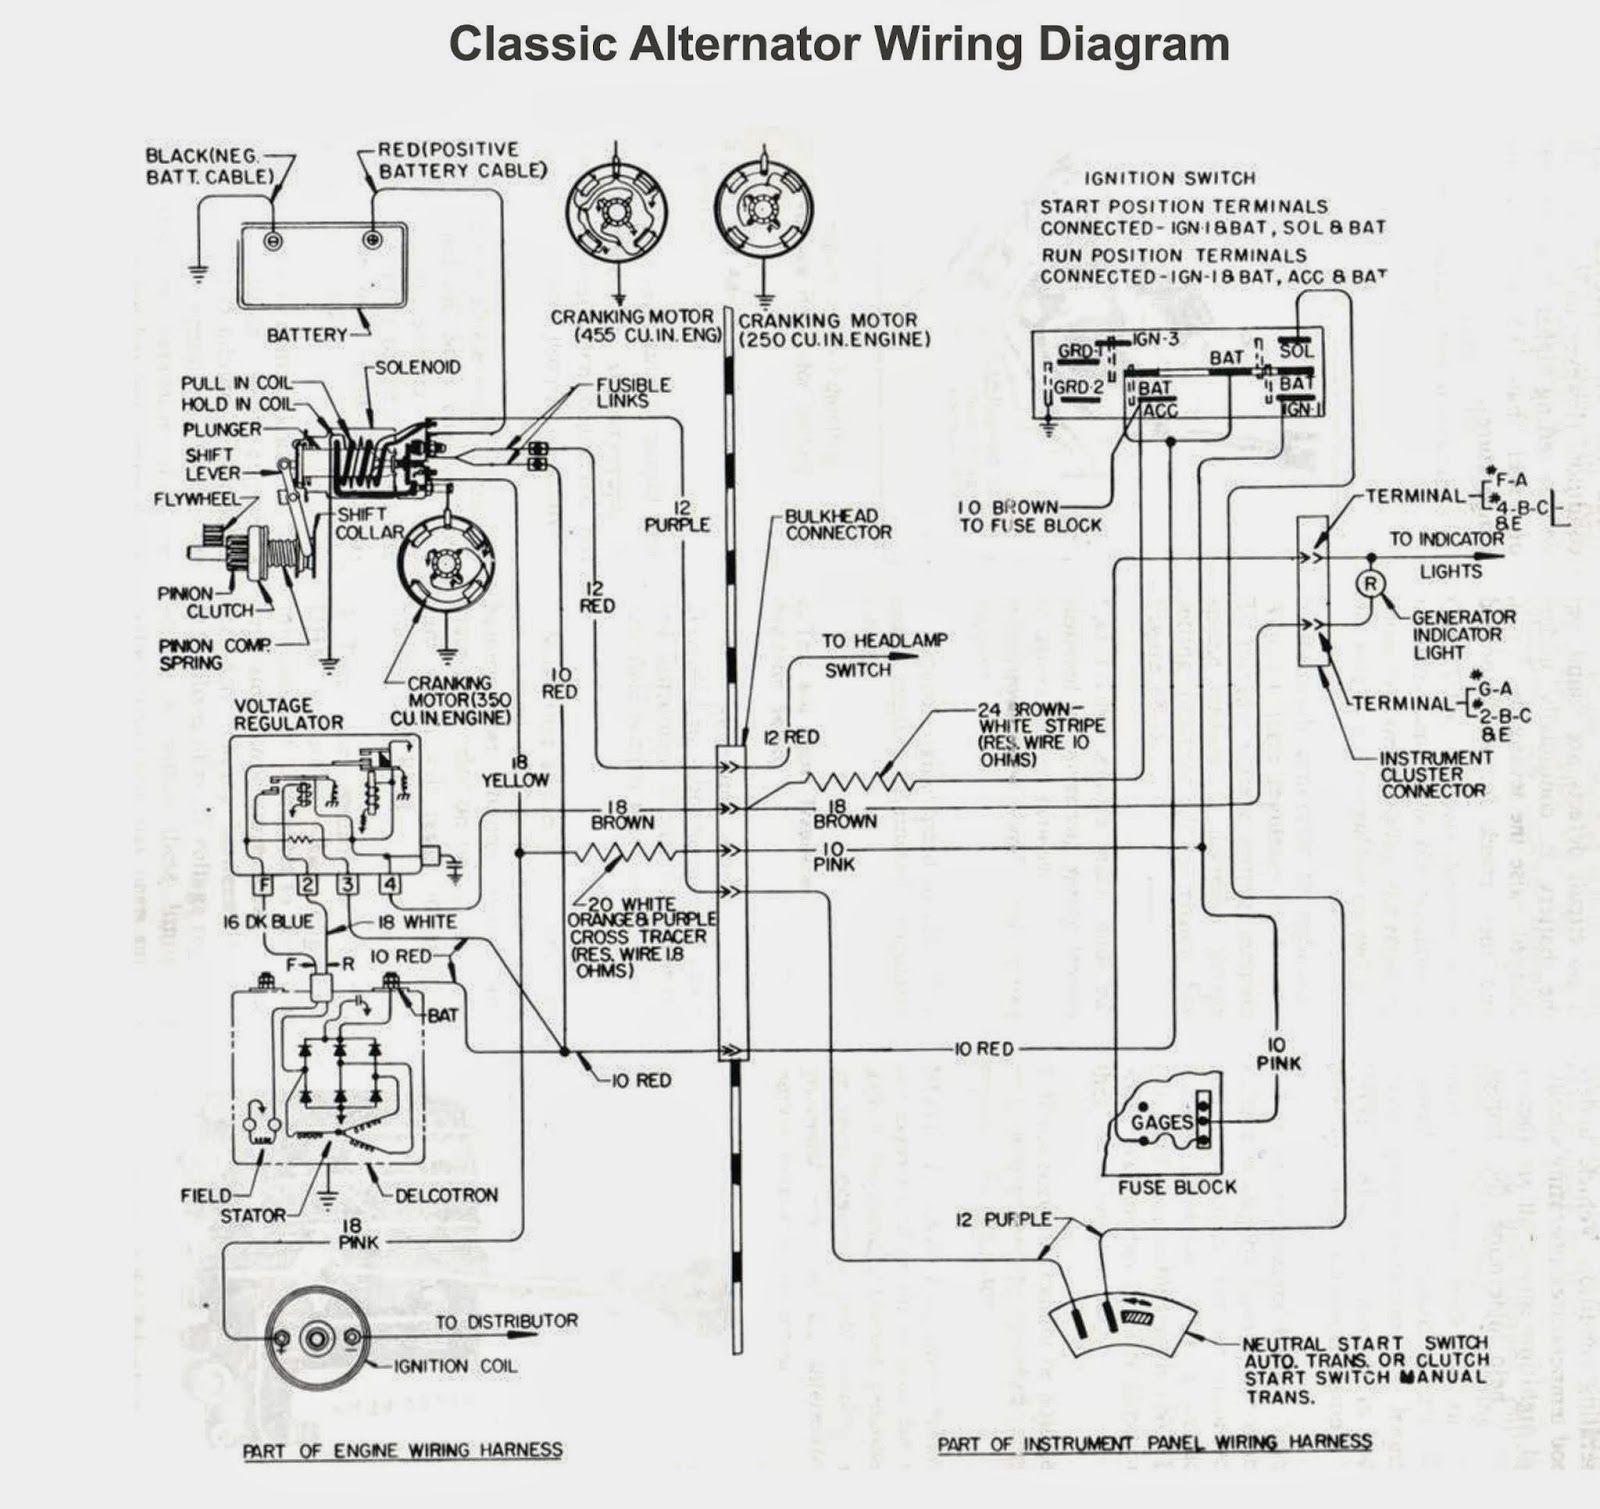 car alternator home generator wire diagram 42 wiring smart car alternator wiring diagram basic car alternator [ 1600 x 1509 Pixel ]